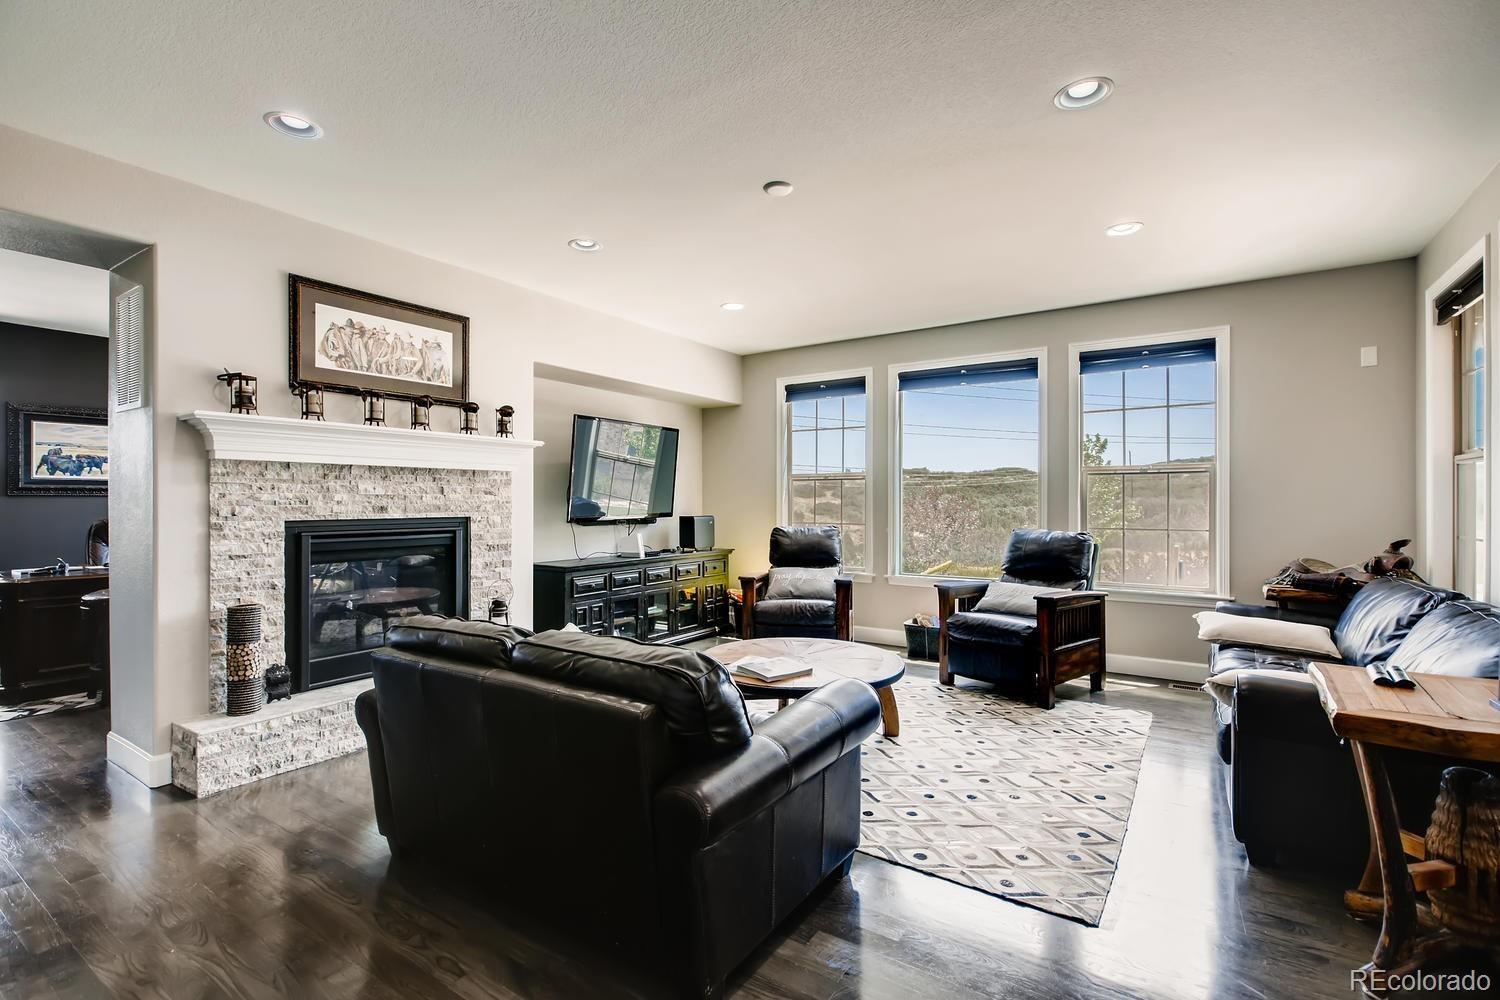 MLS# 5689224 - 4 - 10754 Greycliffe Drive, Highlands Ranch, CO 80126